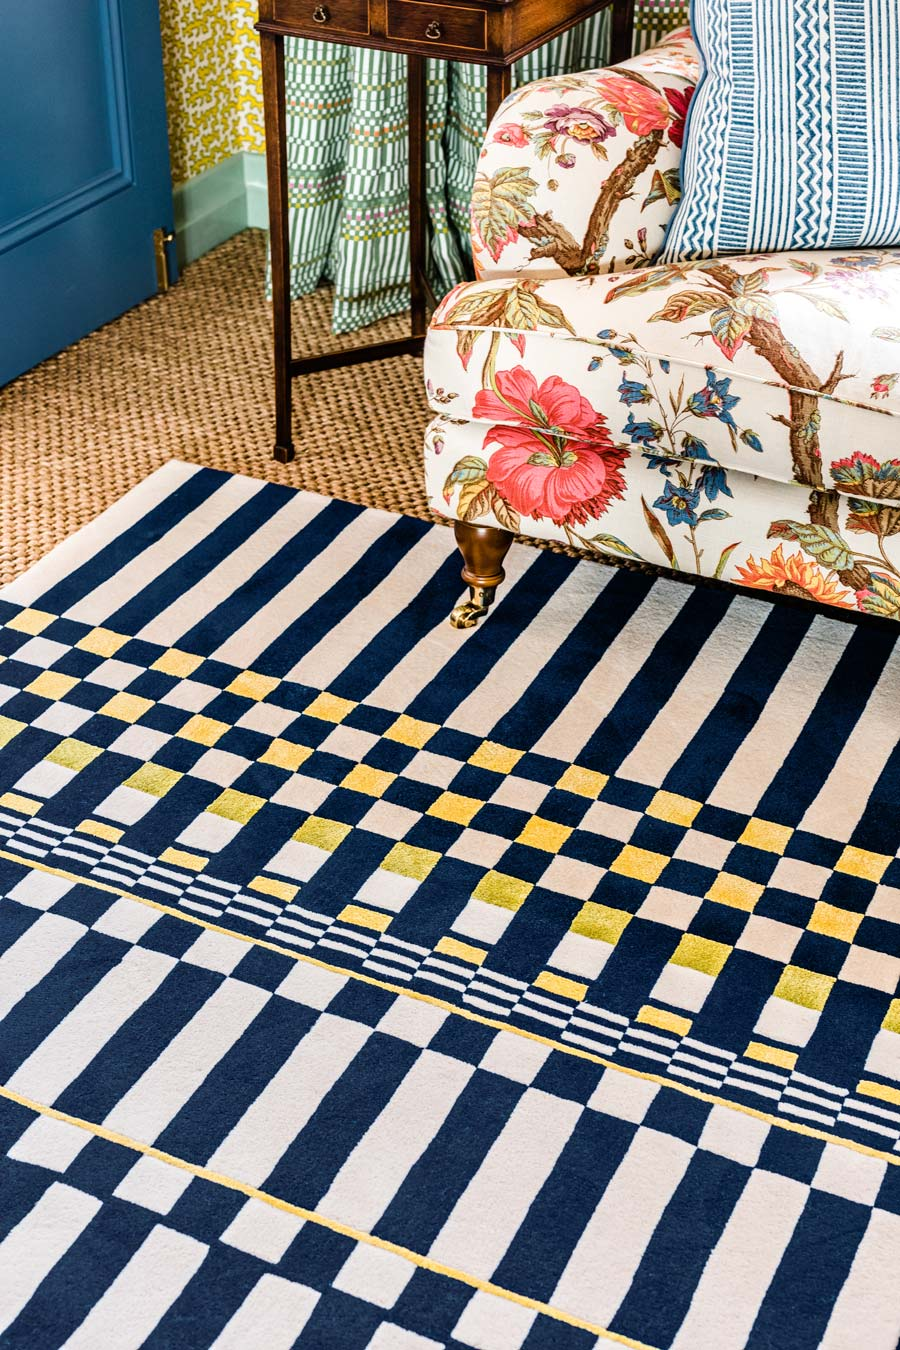 close up shot of otto rug by anna spiro in navy and white geometric pattern